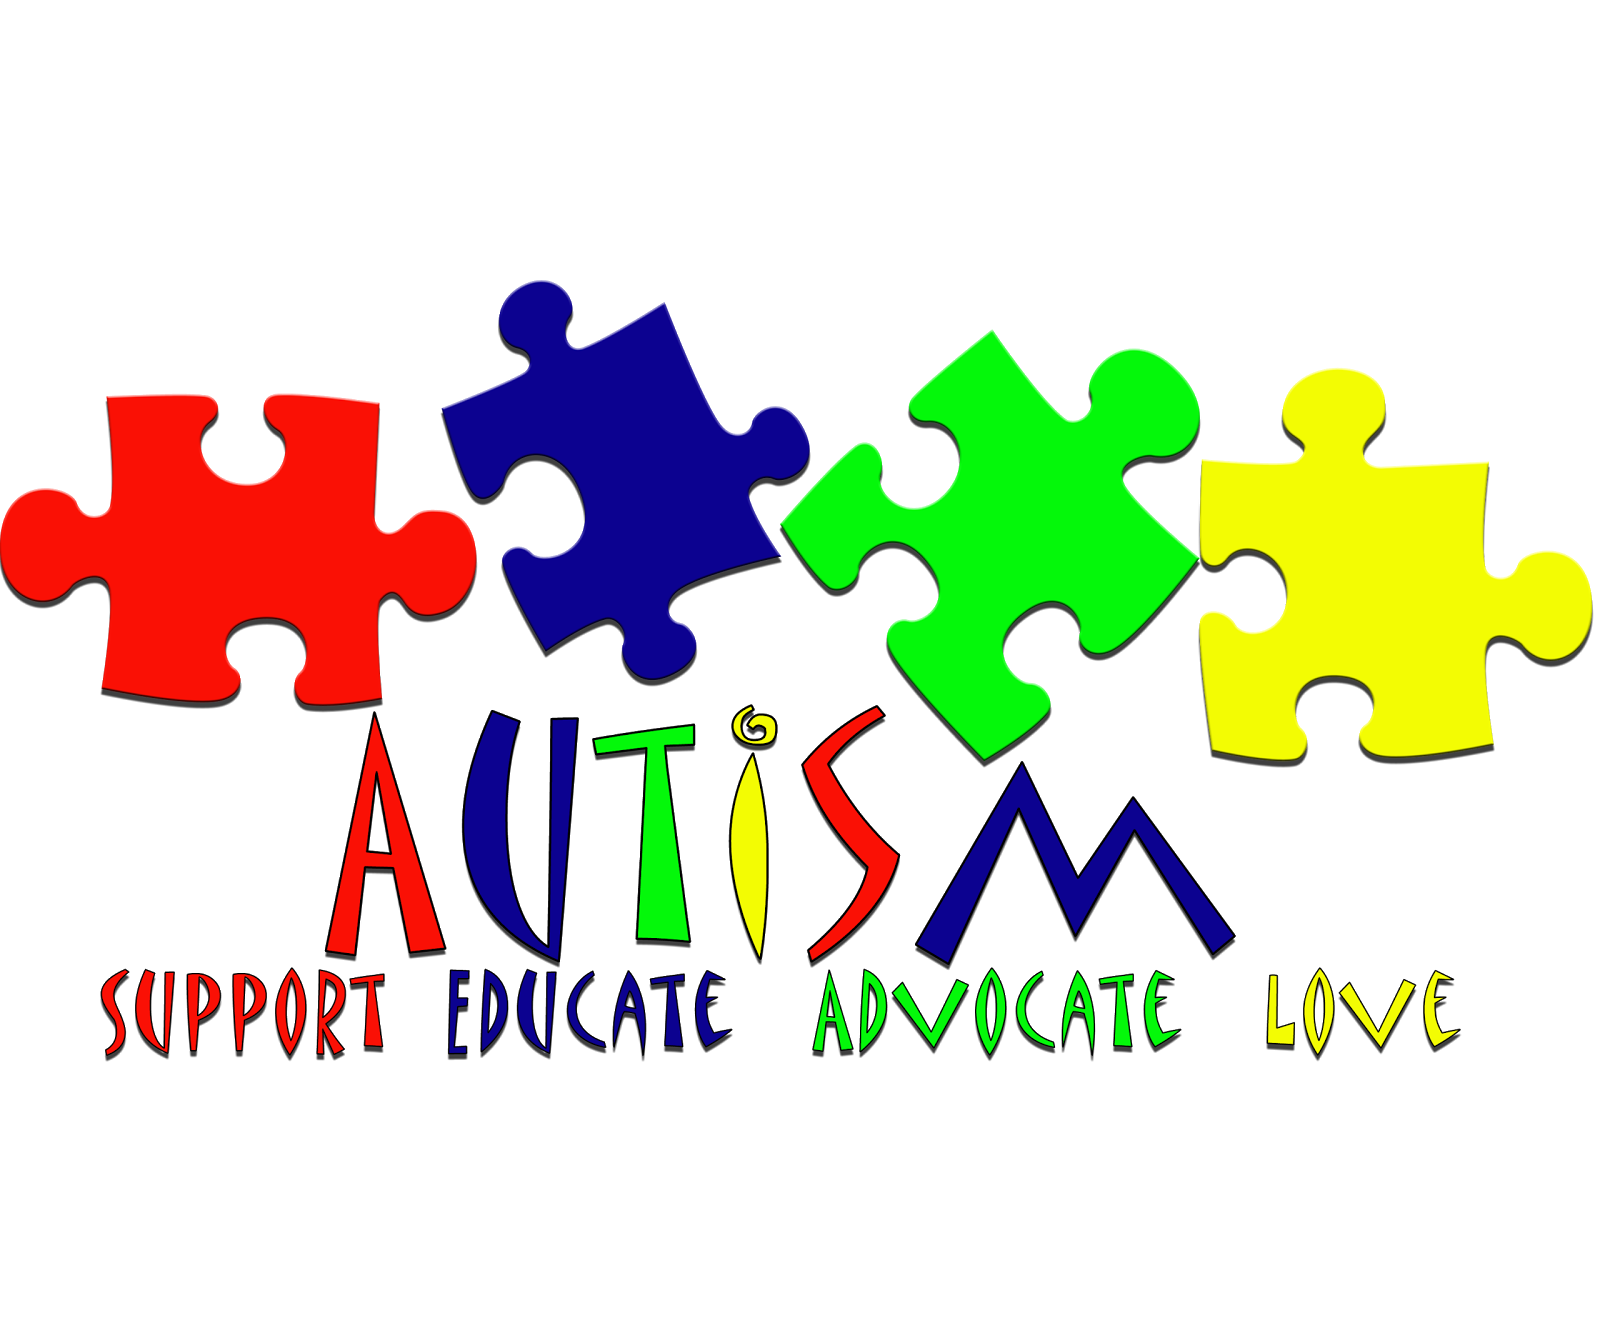 autism awareness clipart - Autism Speaks Logo Vector PNG